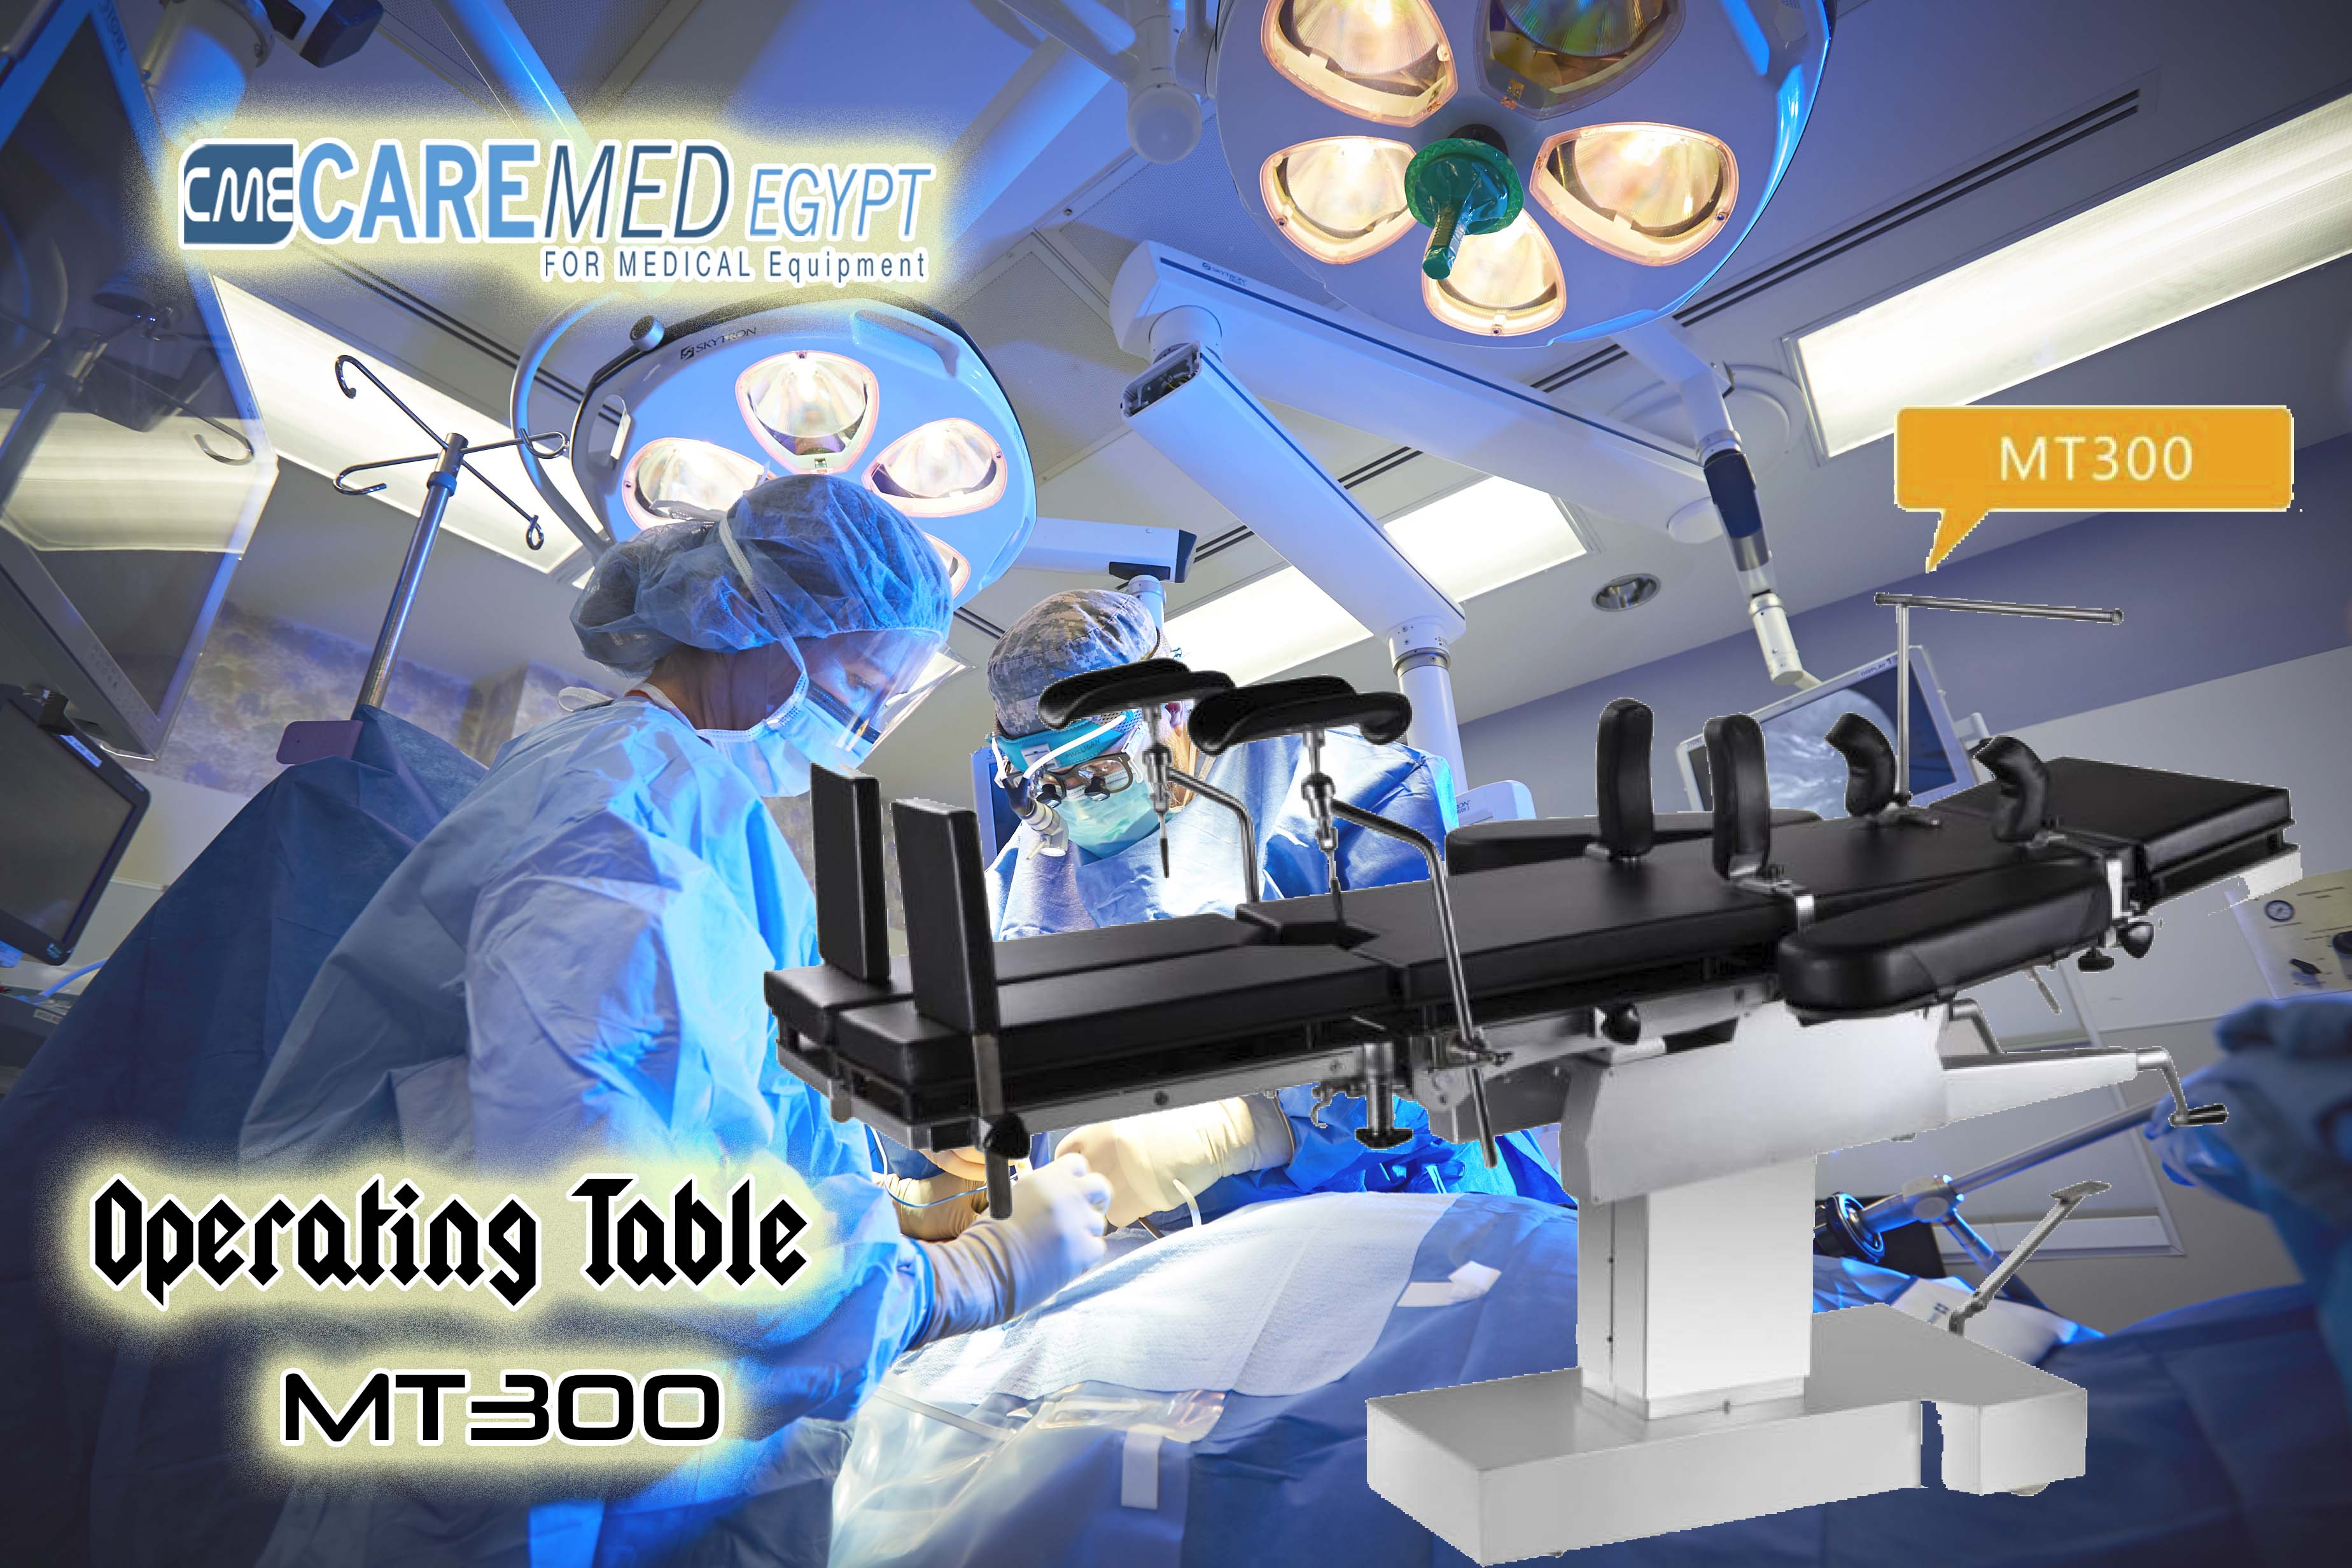 Operating Table MT300